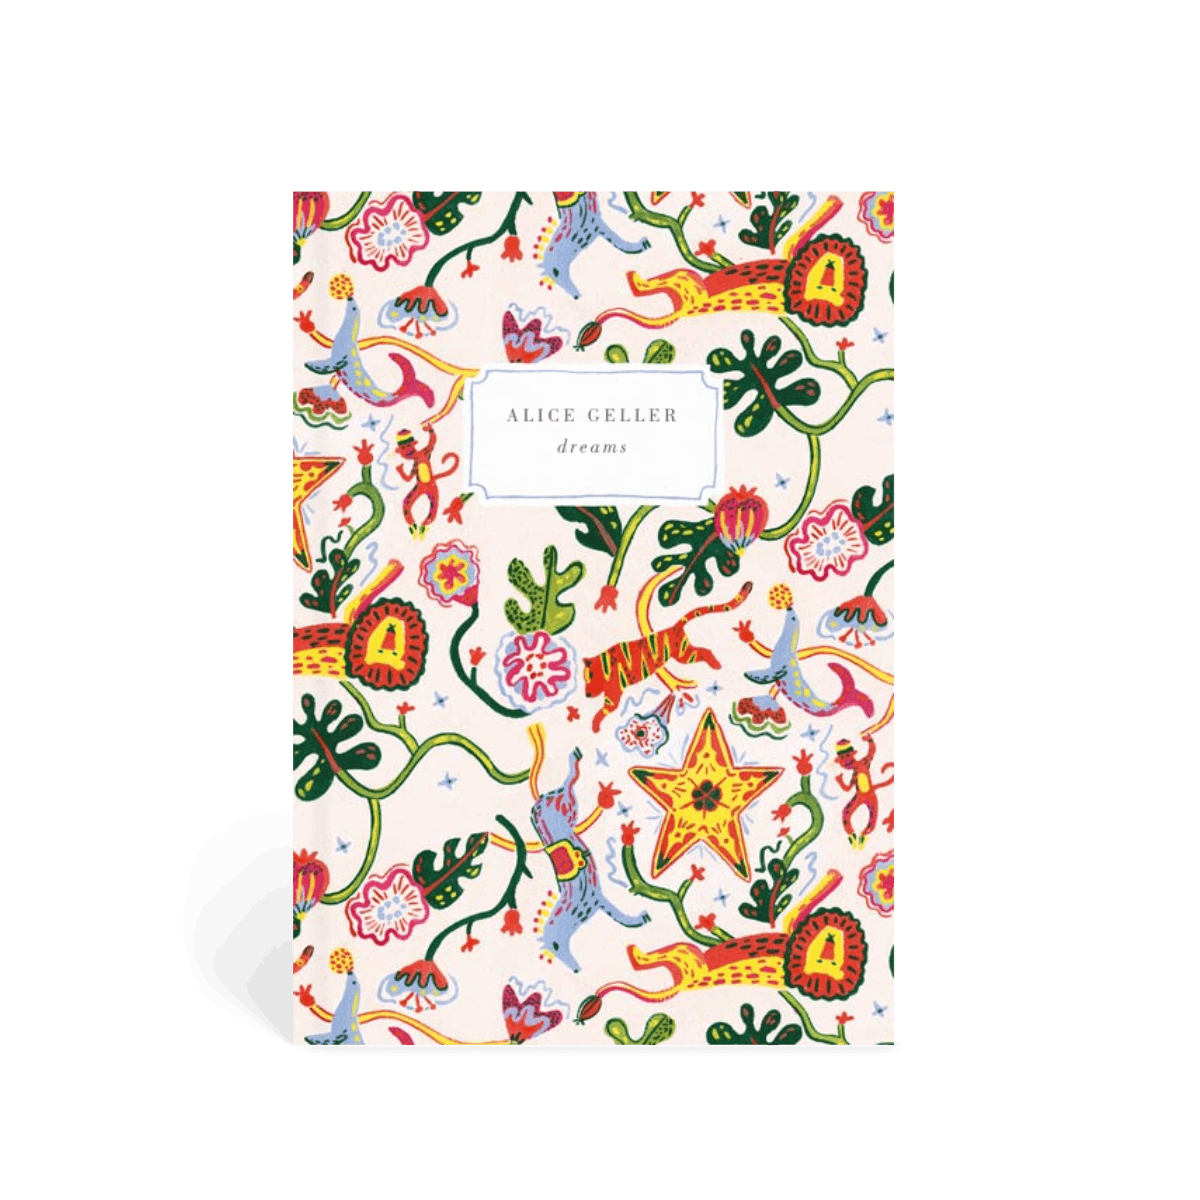 Https%3a%2f%2fwww.papier.com%2fproduct image%2f54954%2f25%2fpsychedelic jungle 13207 front 1542299021.png?ixlib=rb 1.1